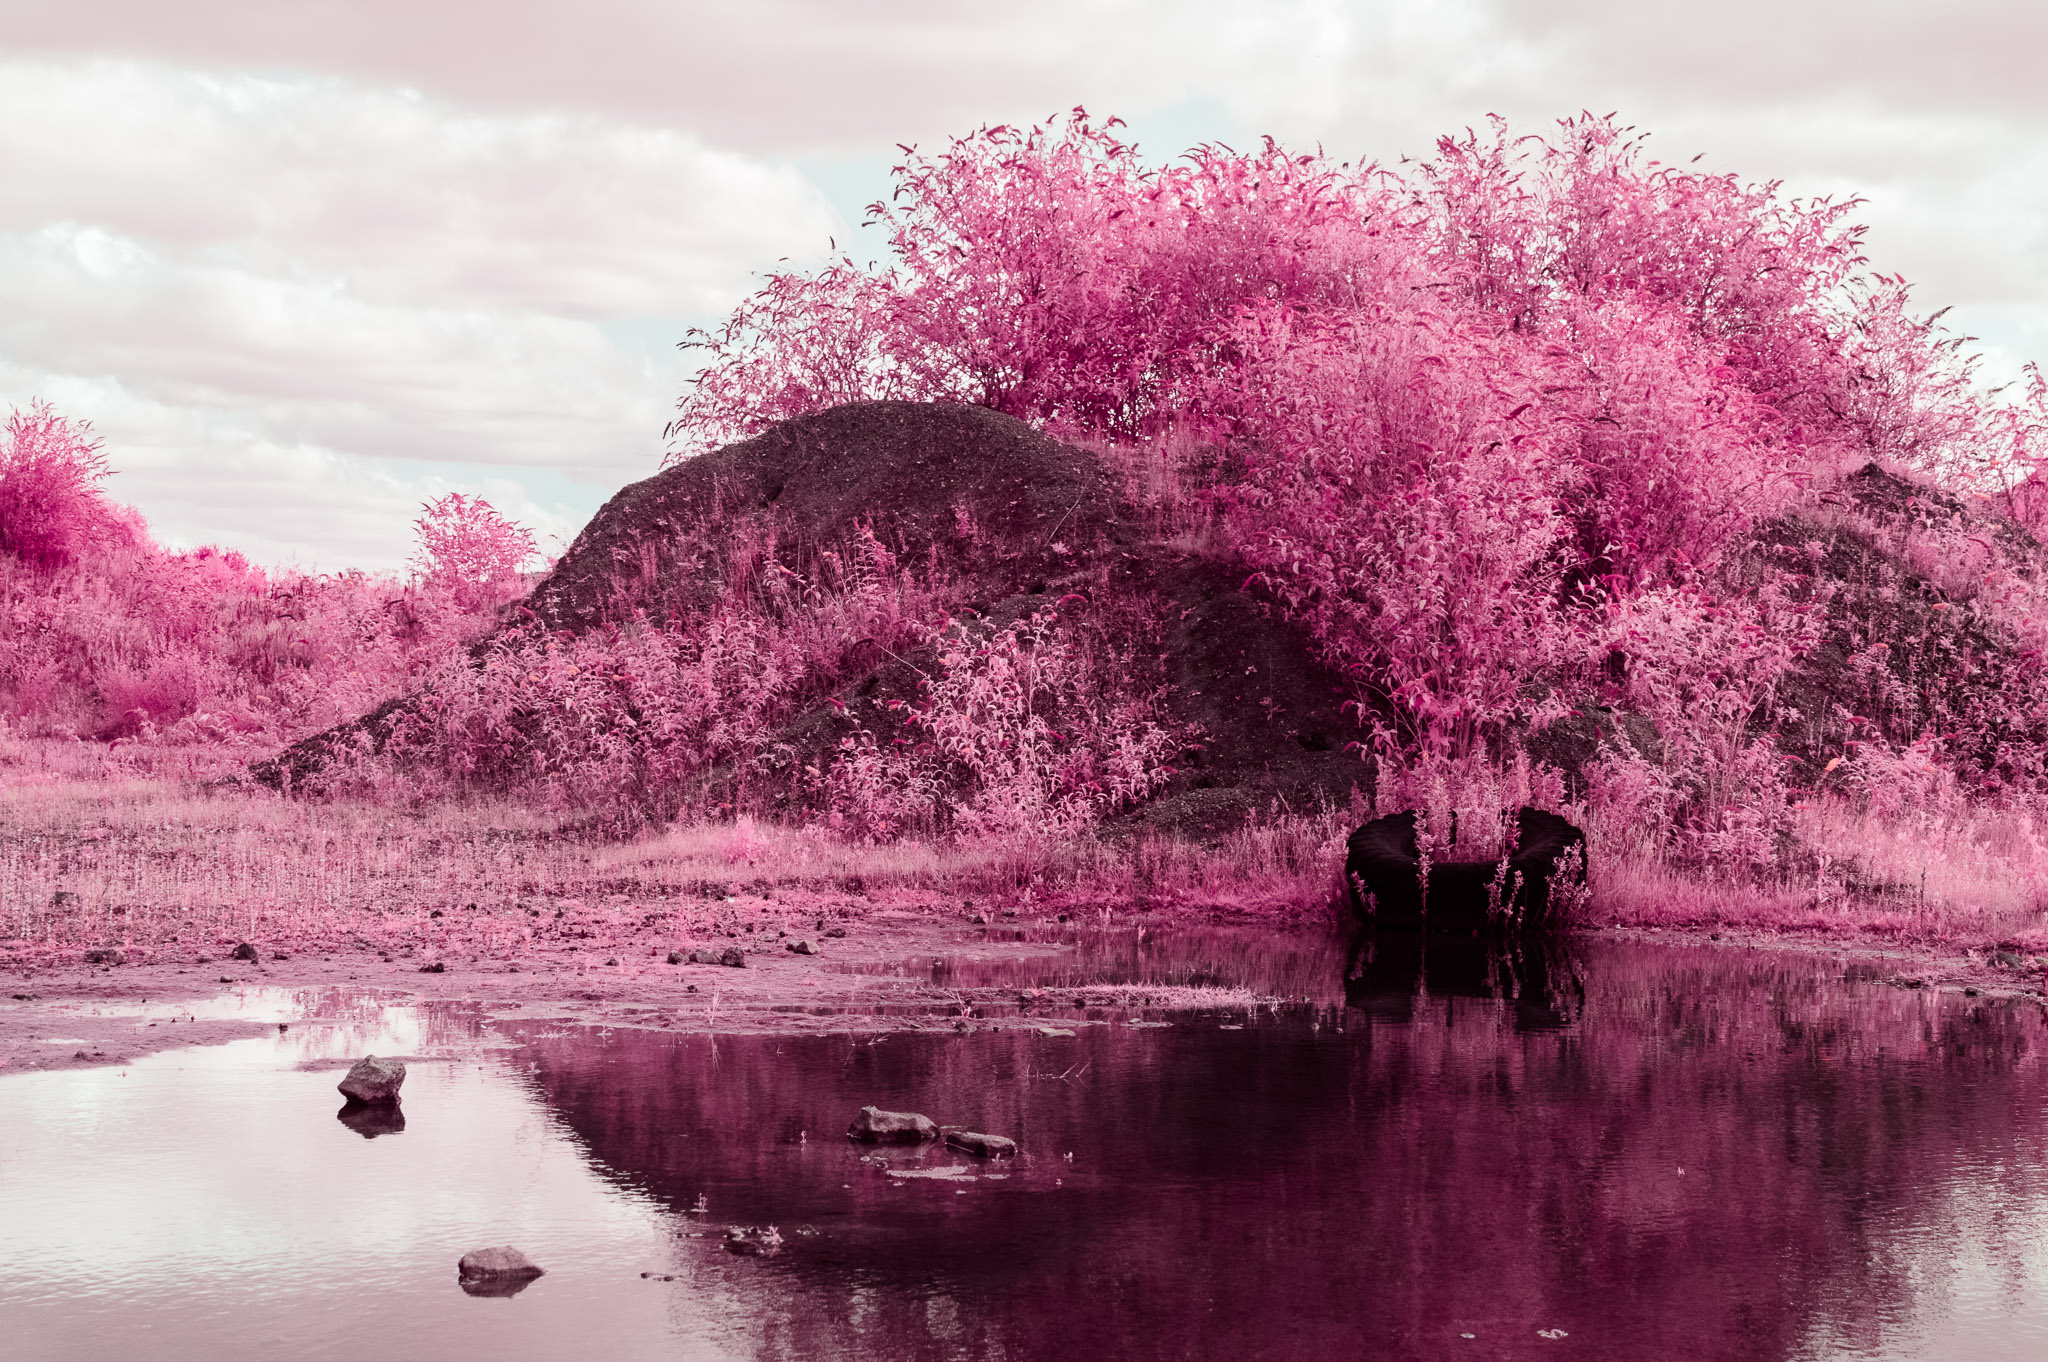 Kodak EIR Colour Infrared, Edgelands, Wasteland, Tyre, Puddle ©Jonny Sutton